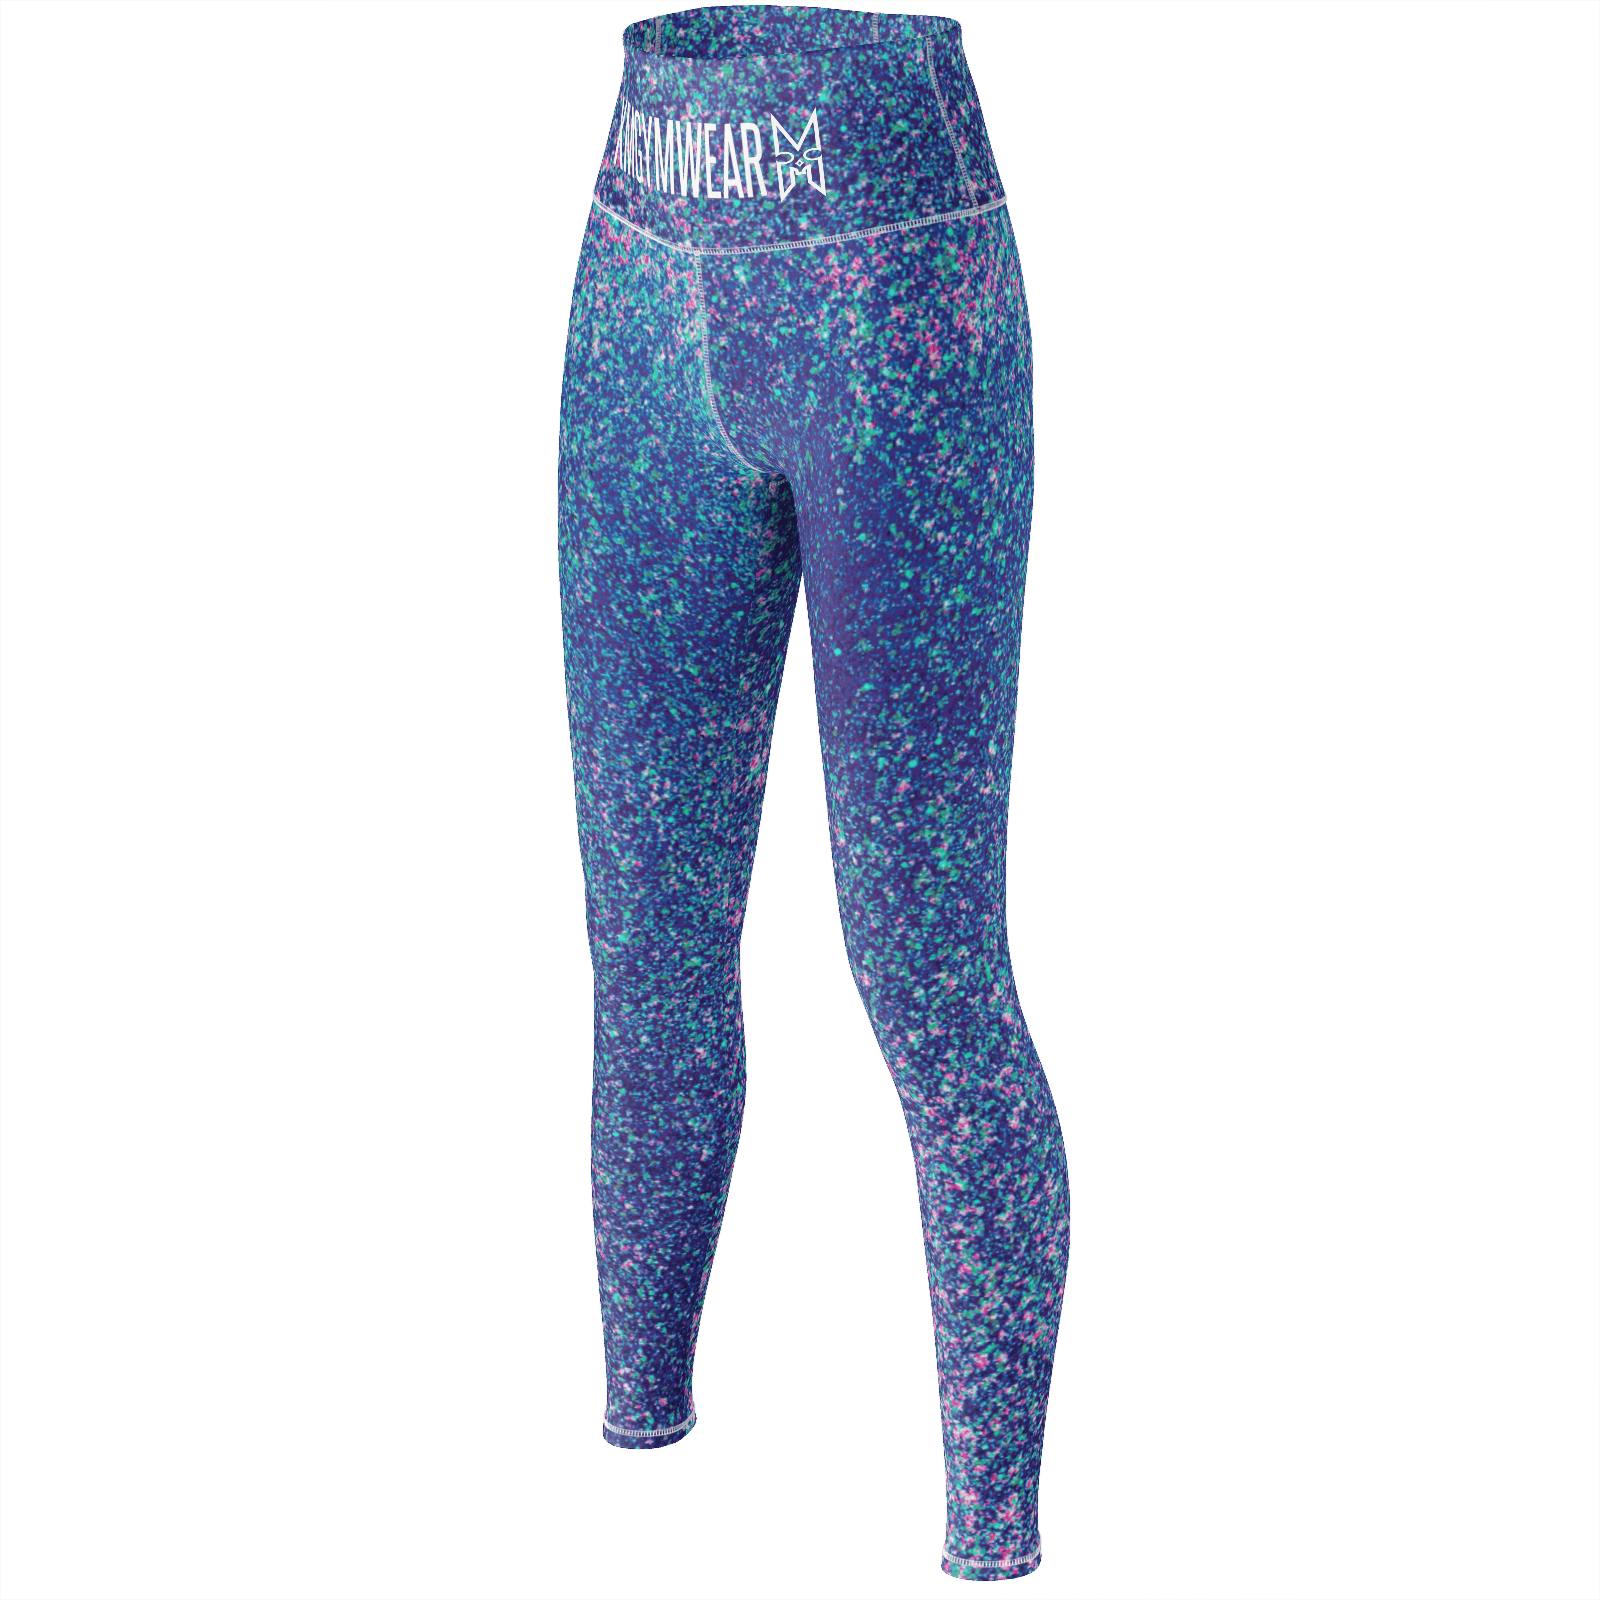 XM GYMWEAR NOVA LEGGINGS